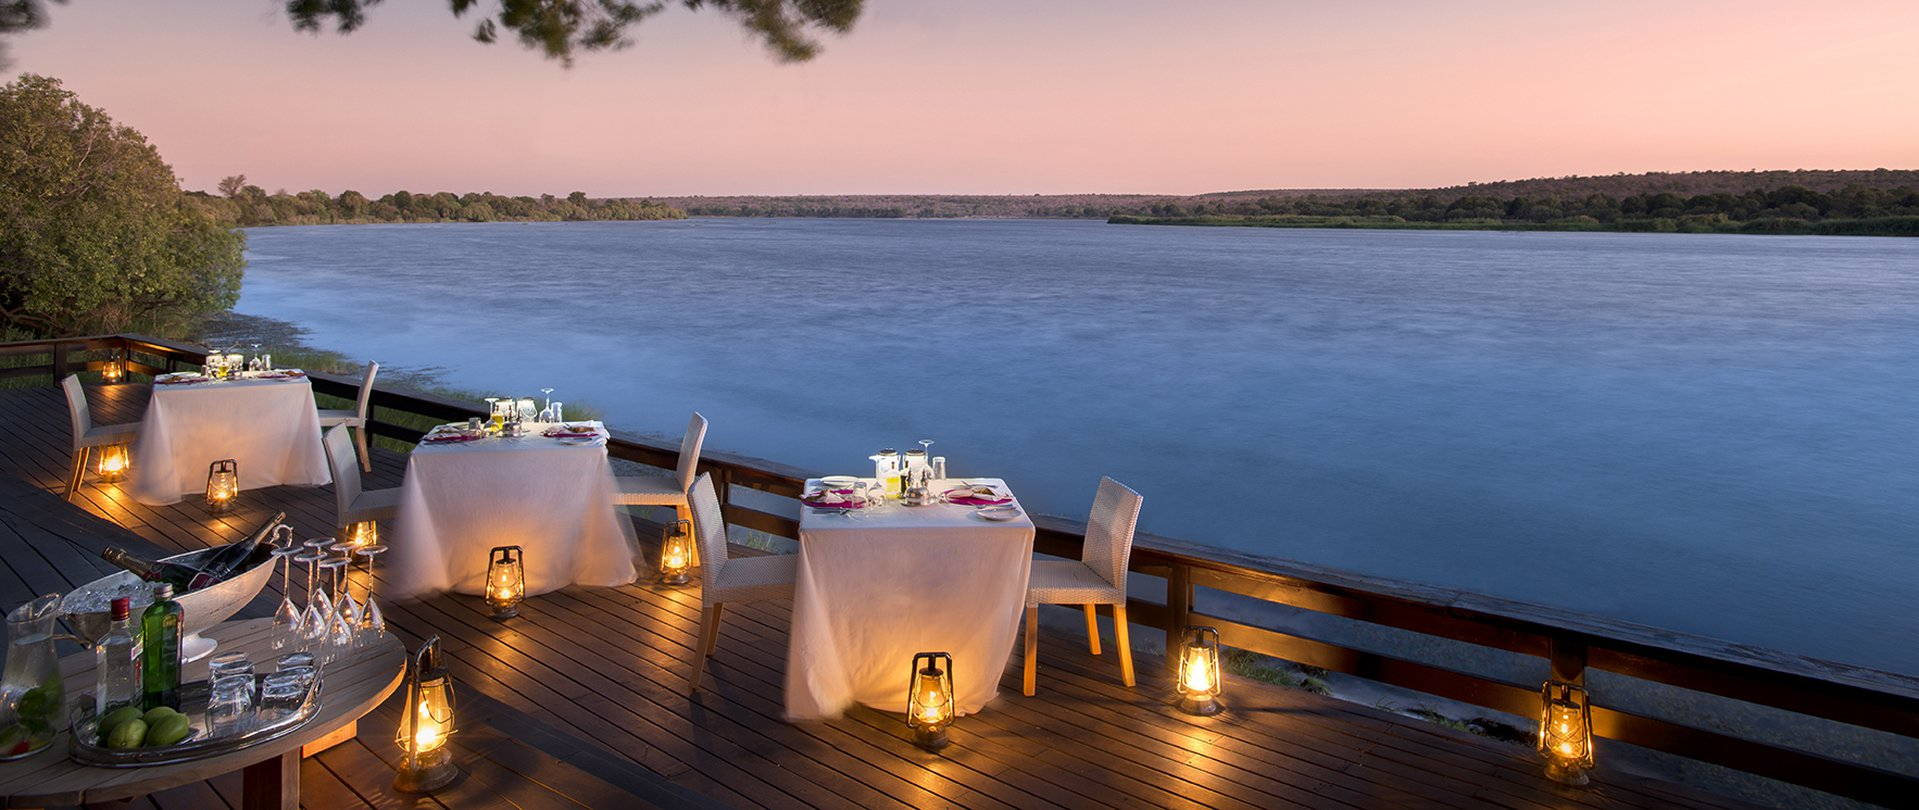 royal-chundu-zambezi-river-lodge-activities-dining-01.jpg